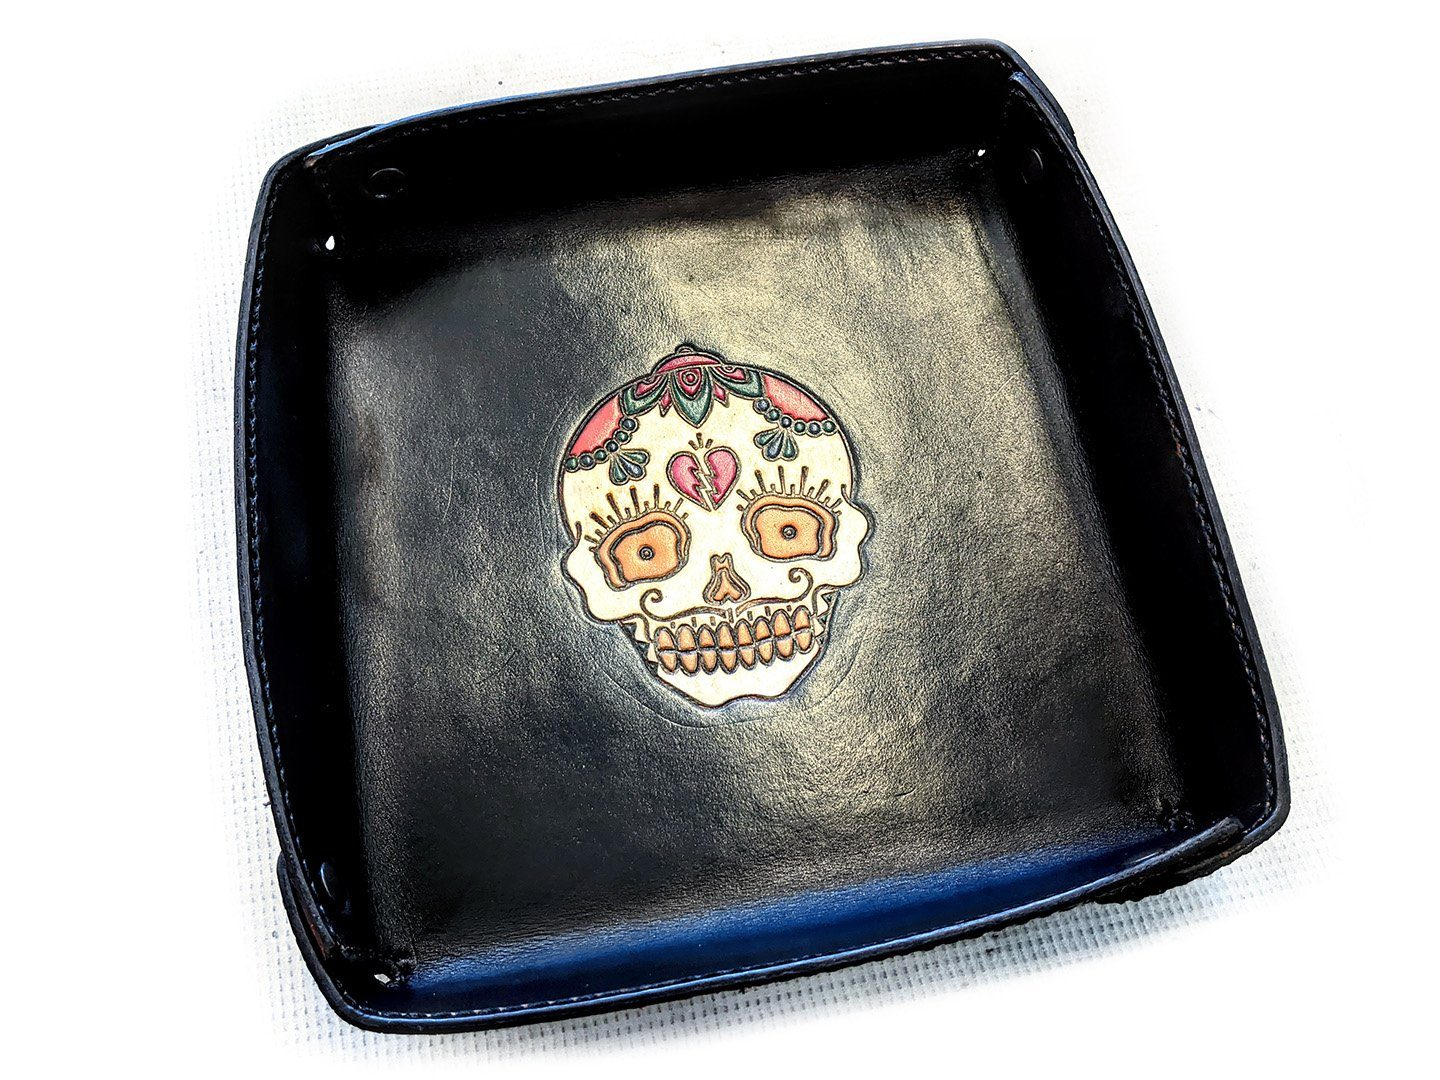 8 Inch EDC Tray - Hand Stained Broken Hearted Skull